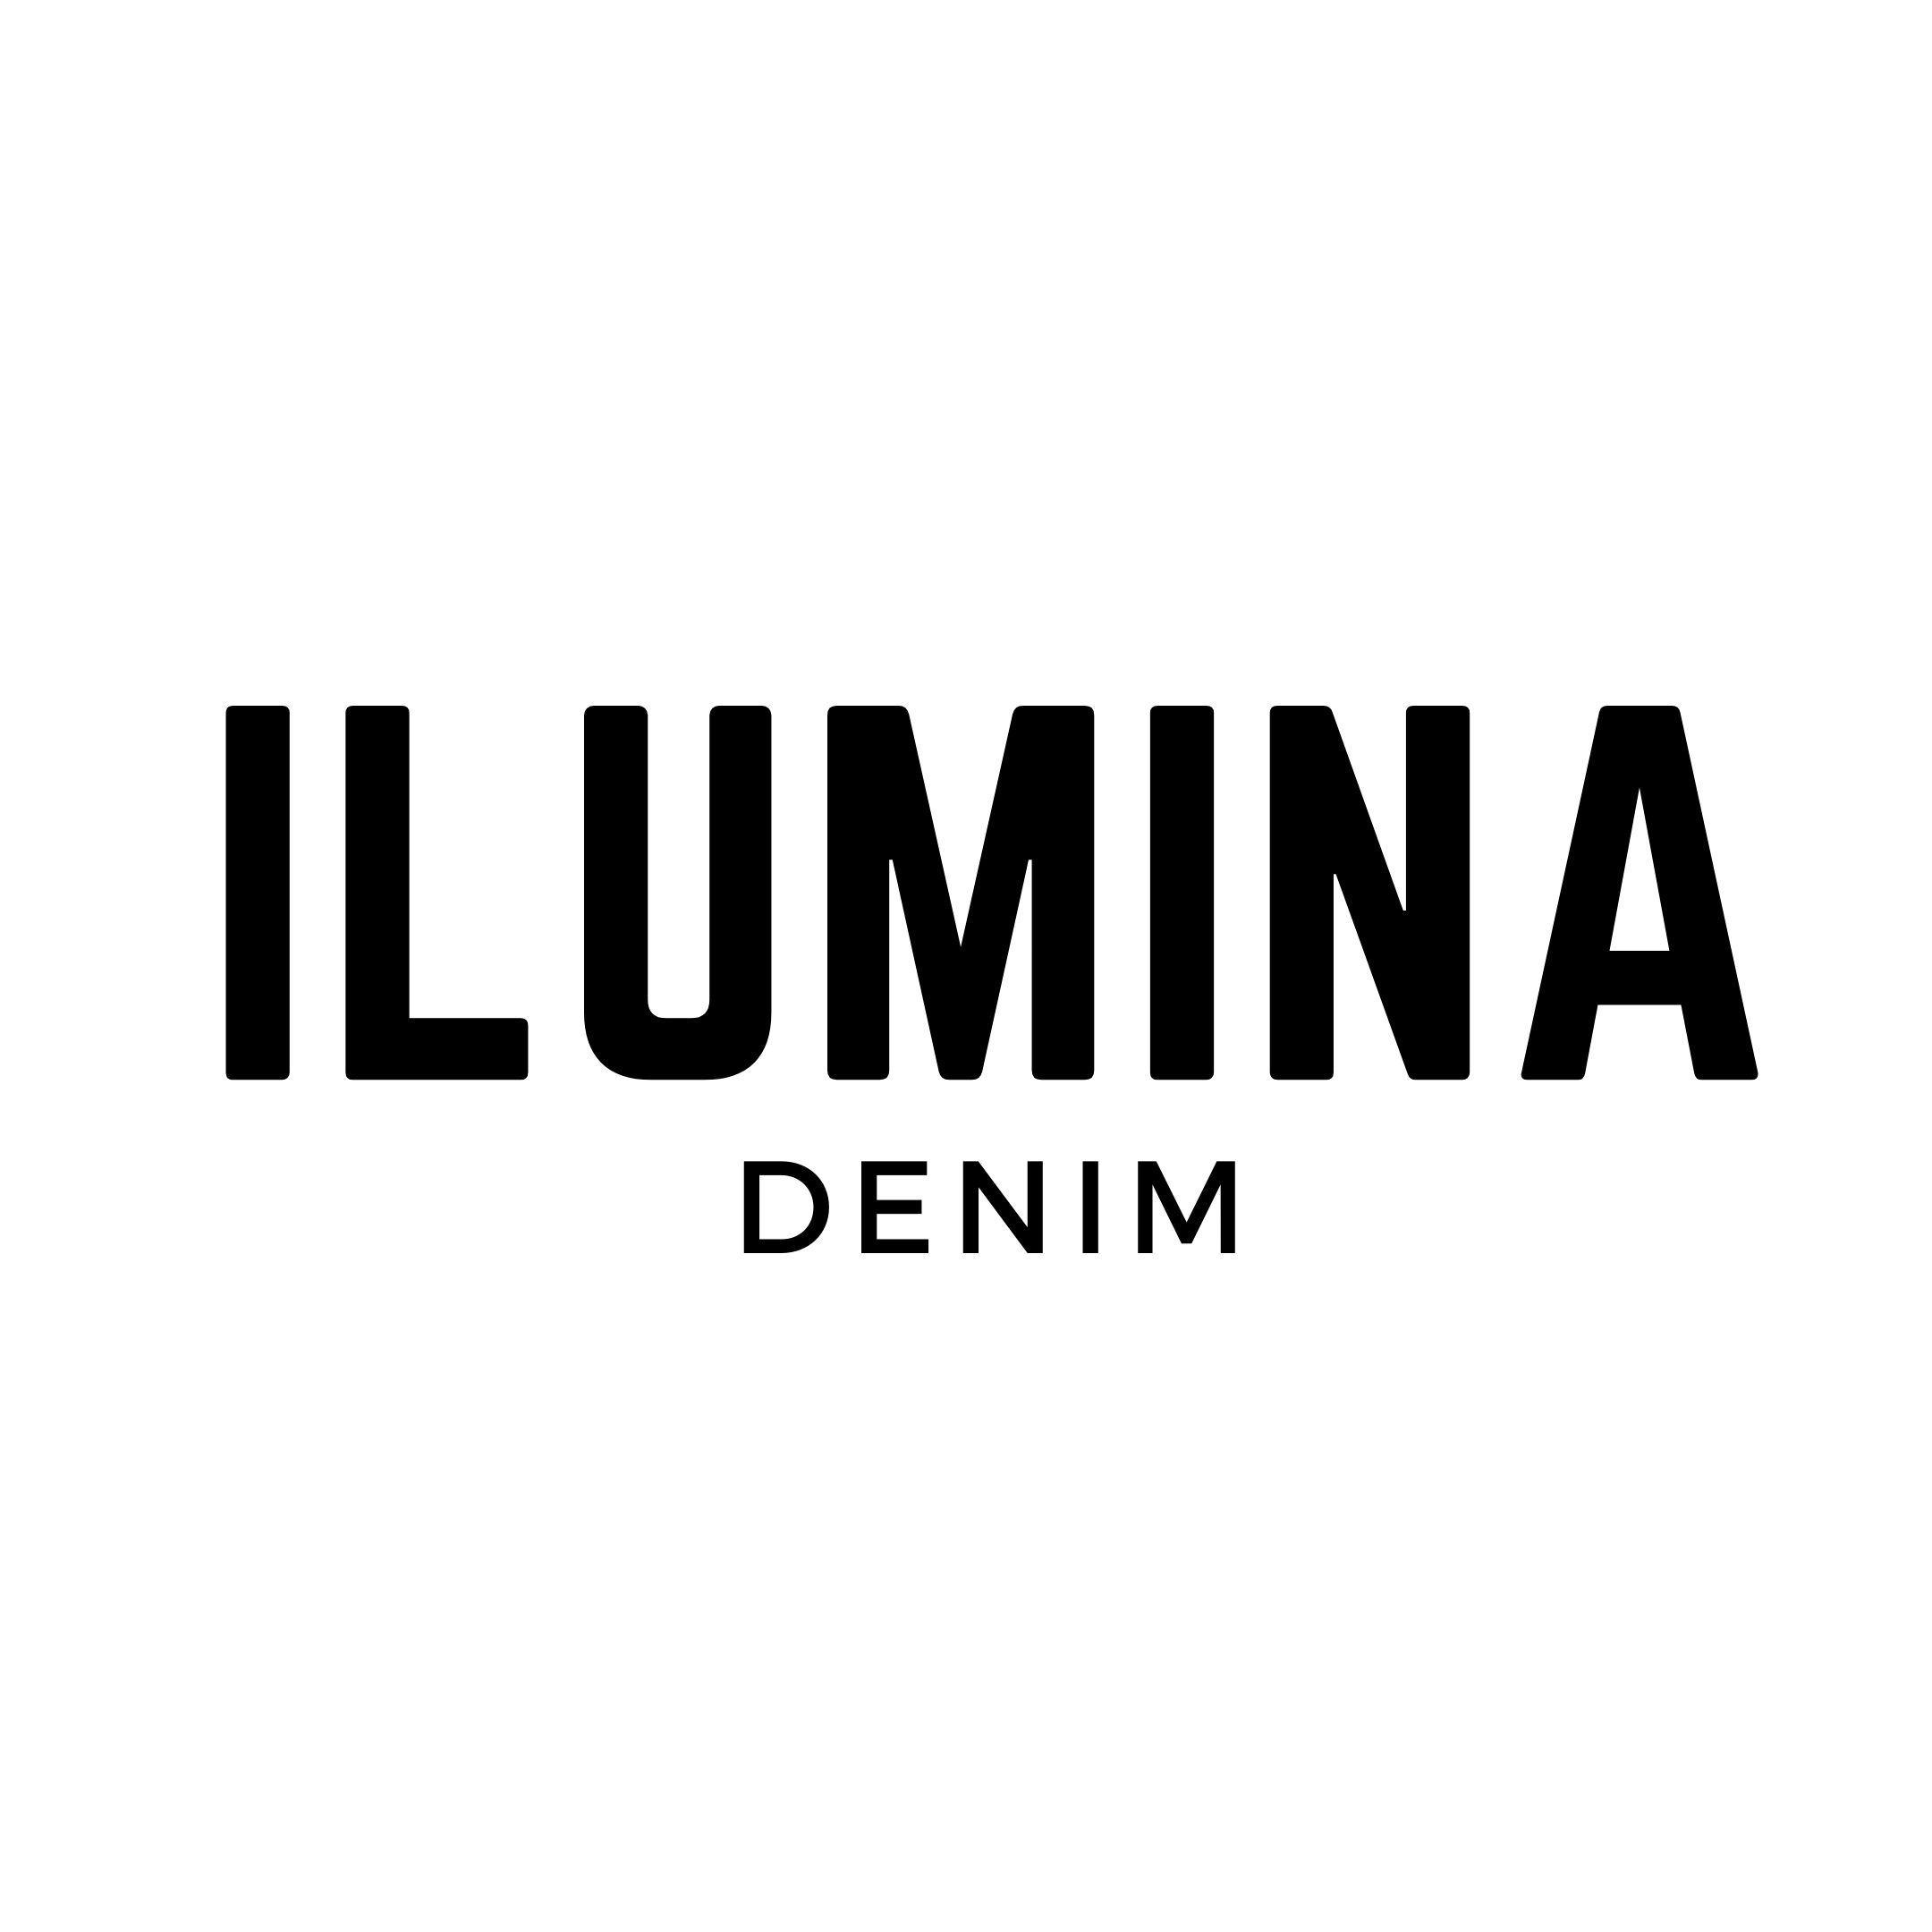 ilumina denim